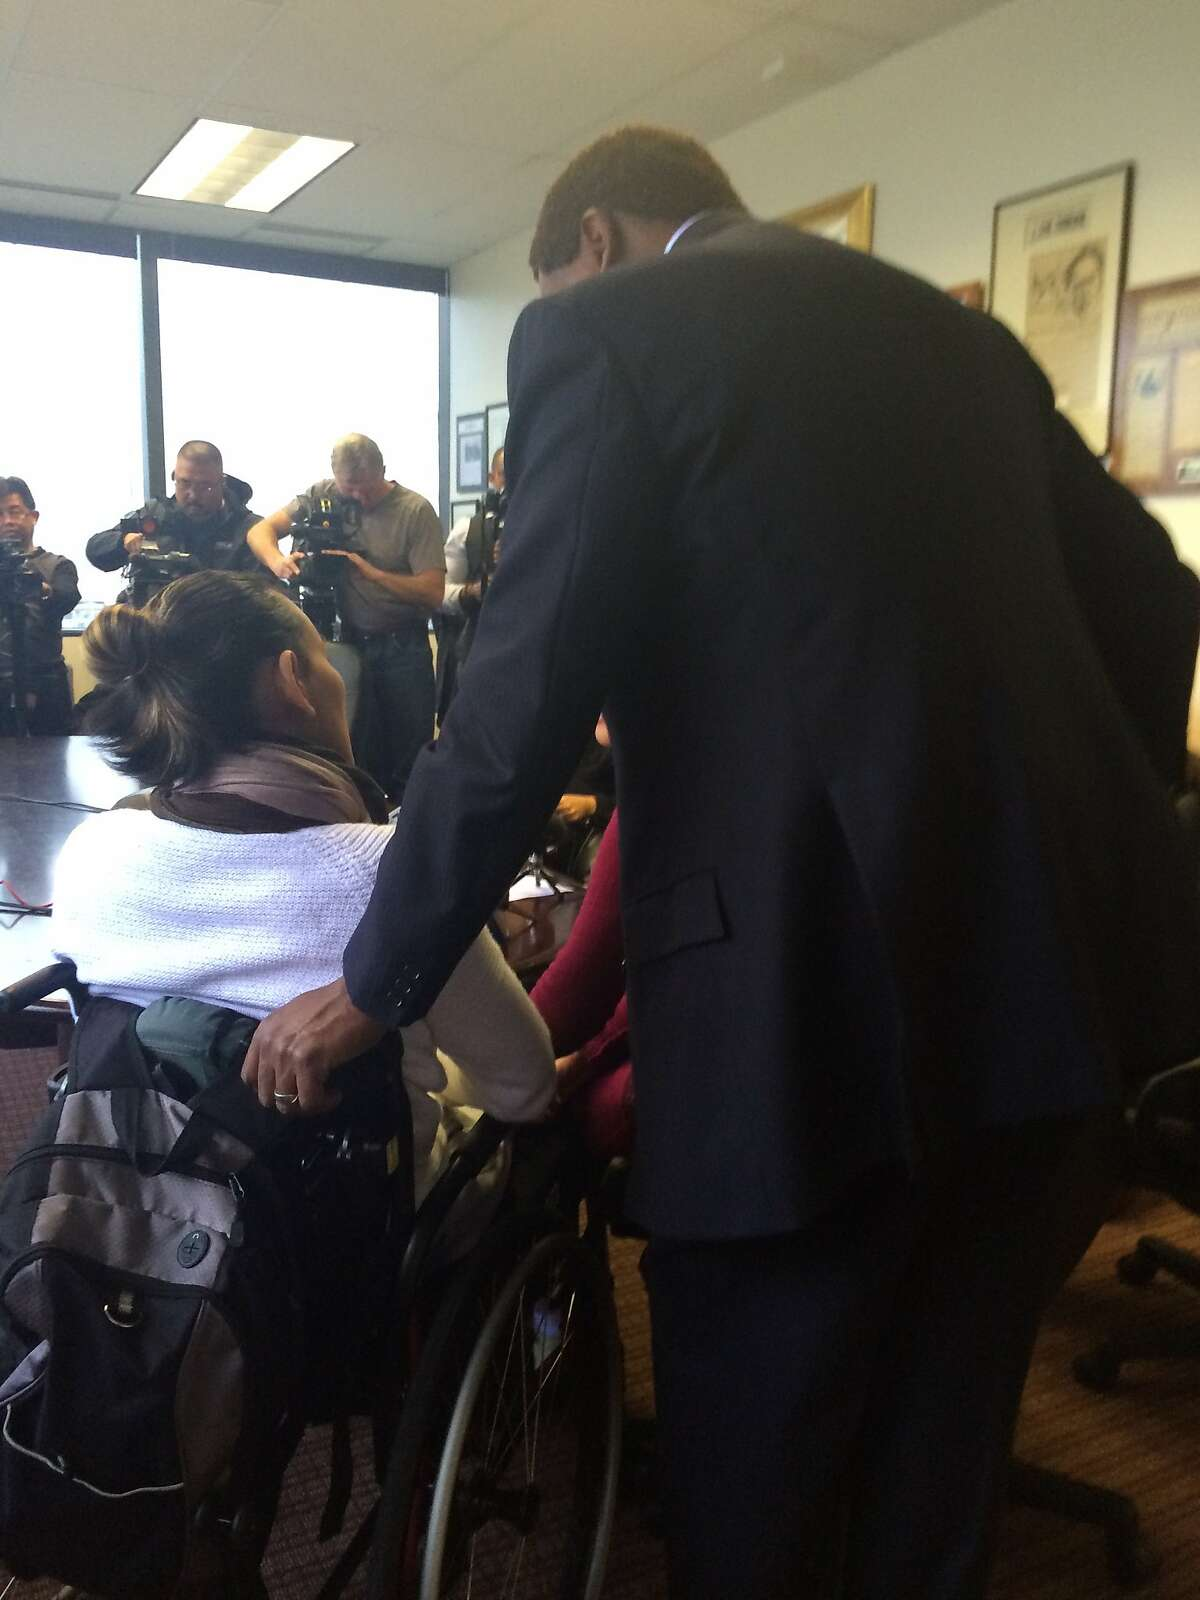 Hung Lam, 36, speaks to media in his wheel chair at John L. Burris' law offices in Oakland. He asked not to have his face shown out of privacy. Lam was left permanently paralyzed from the waist down after a January 2014 officer-involved shooting. Hung Lam, 36, speaks to media in his wheel chair at John L. Burris' law offices in Oakland. Lam was left permanently paralyzed from the waist down after a January 2014 officer-involved shooting.